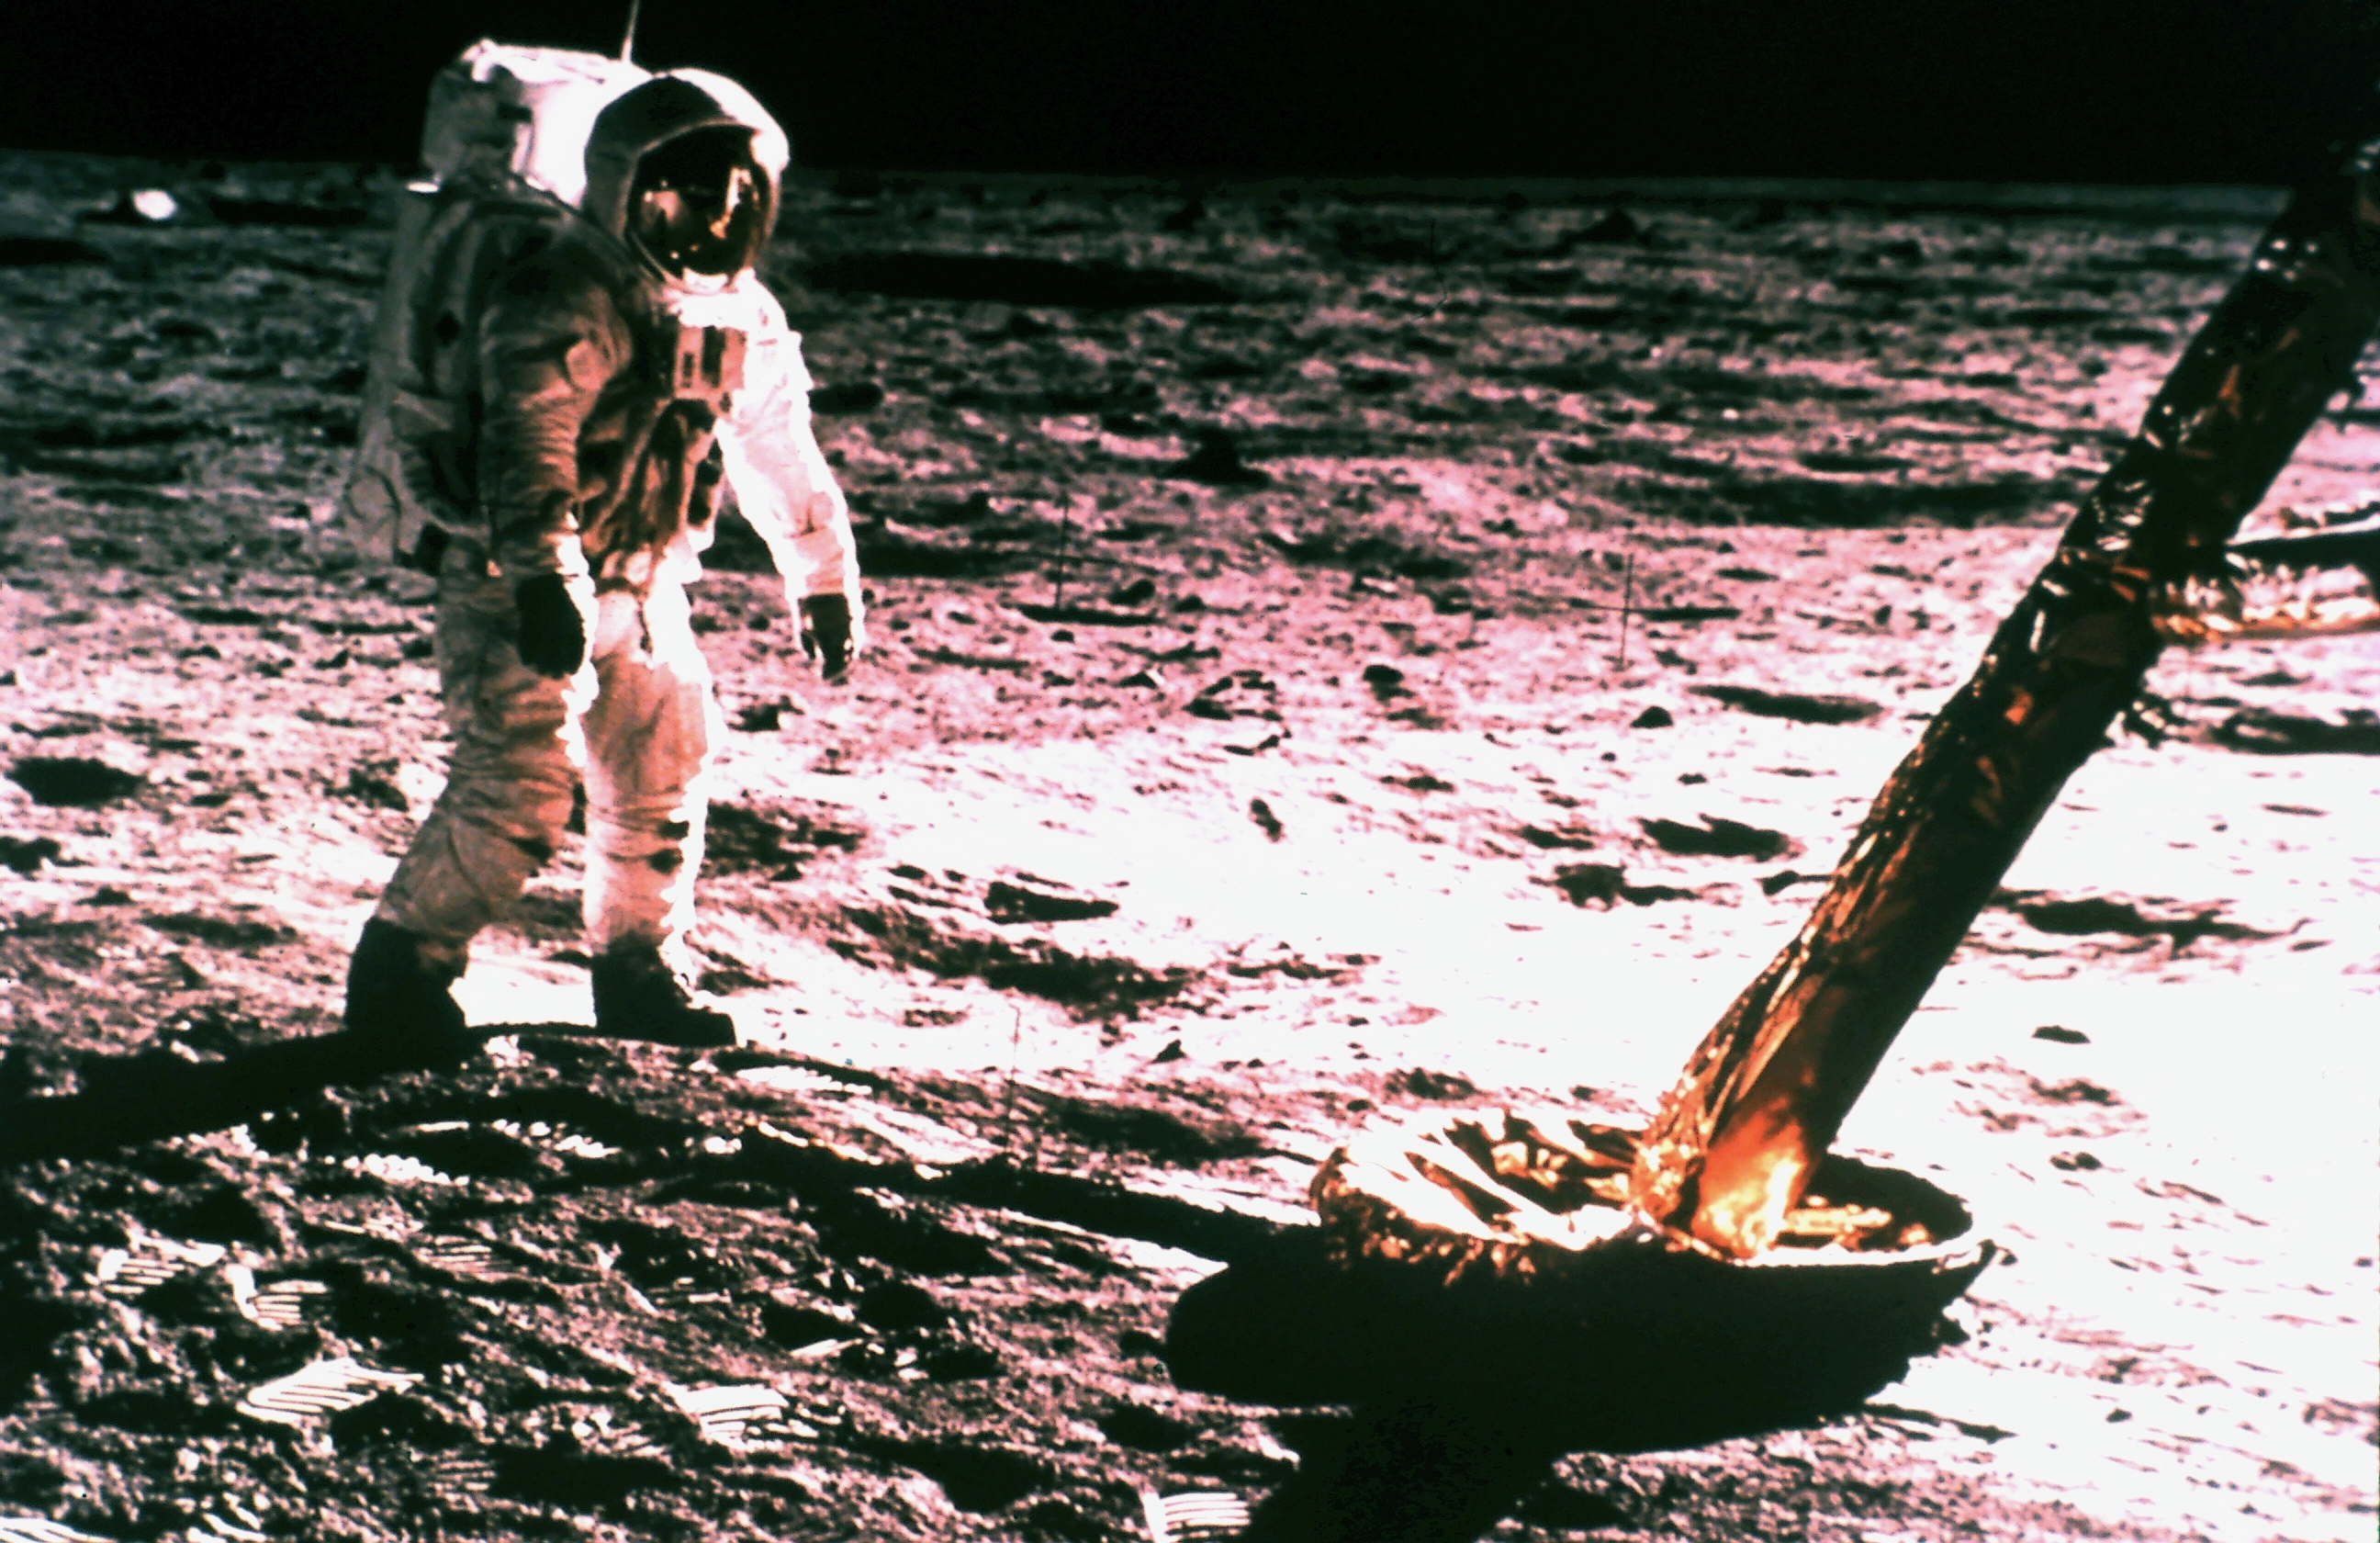 An American astronaut stands in his white spacesuit and large glass fronted helmet on a rocky moon surface next to the foot of his lunar landing module